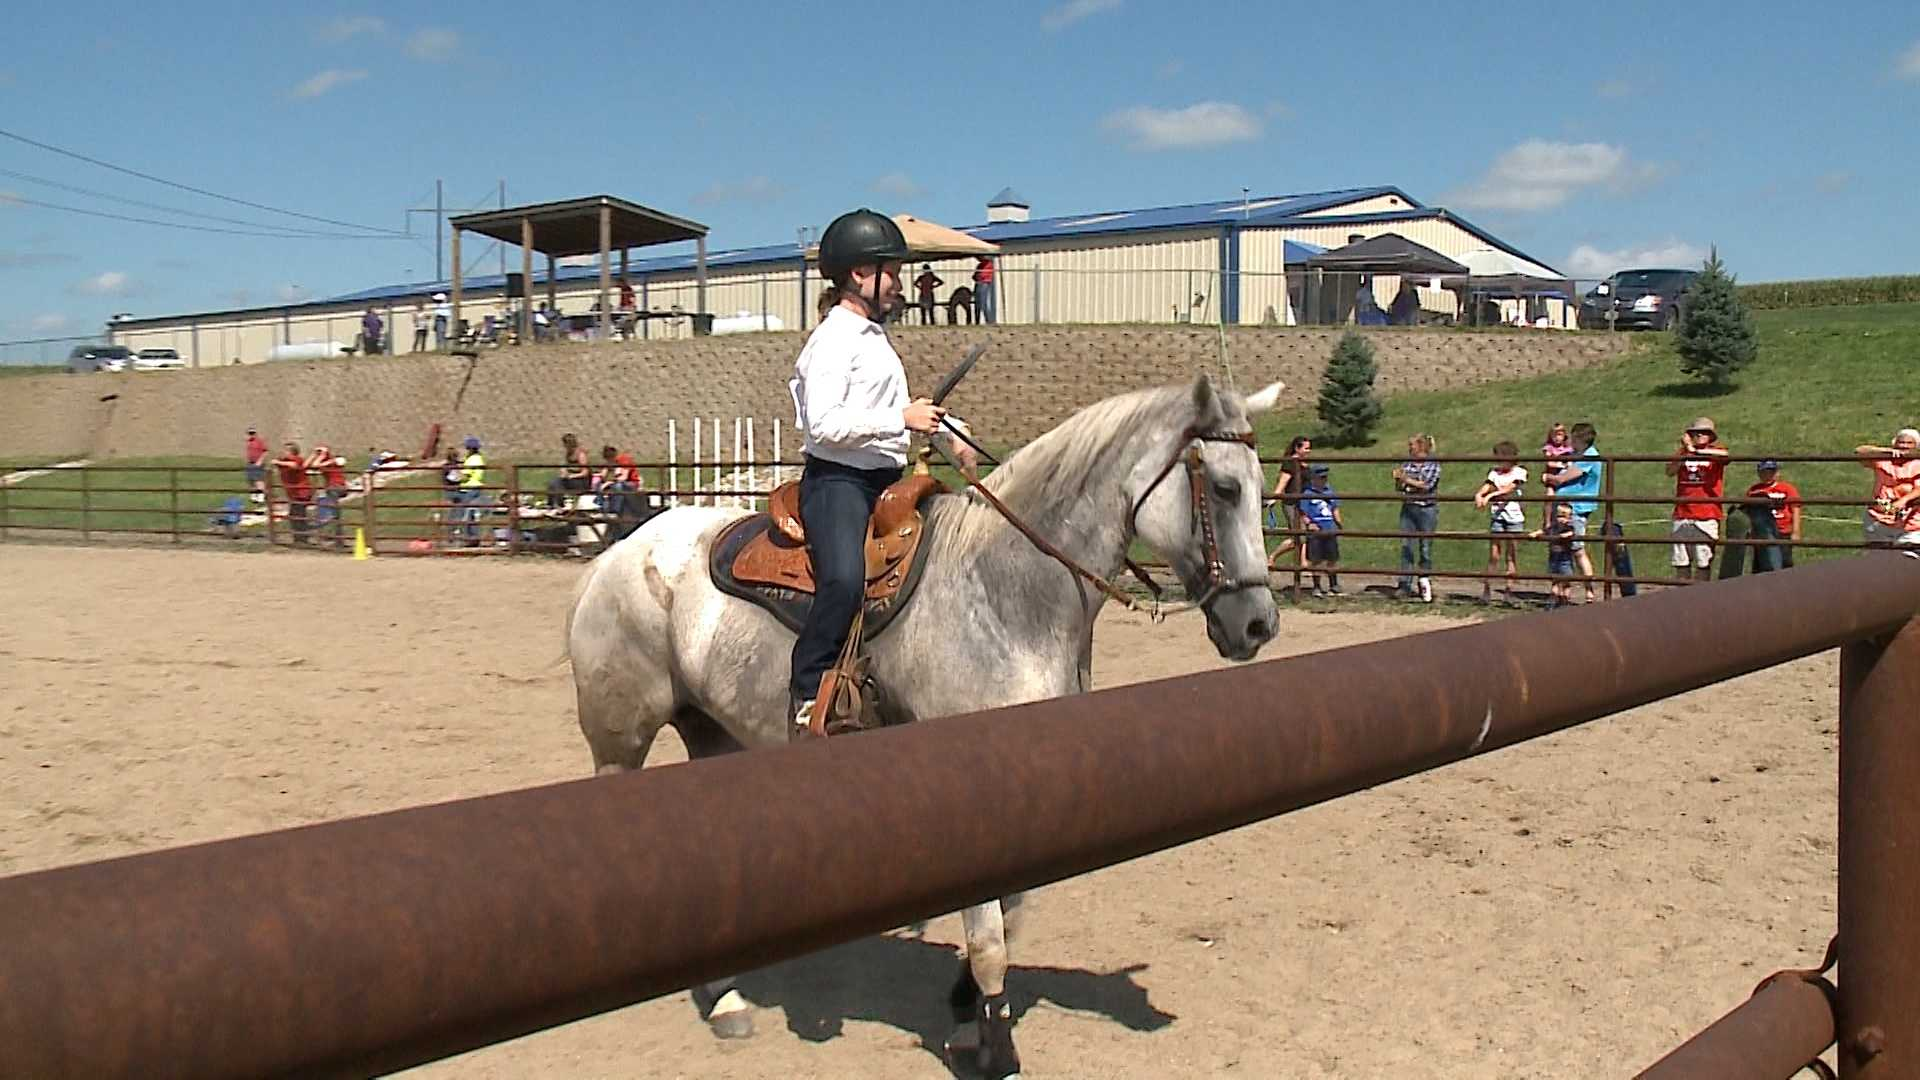 Paige Bunns was one nearly 25 young participants ages 12 and younger who competed Saturday at the Little Britches Horse Show at the Heartland Equine Therapeutic Riding Academy.